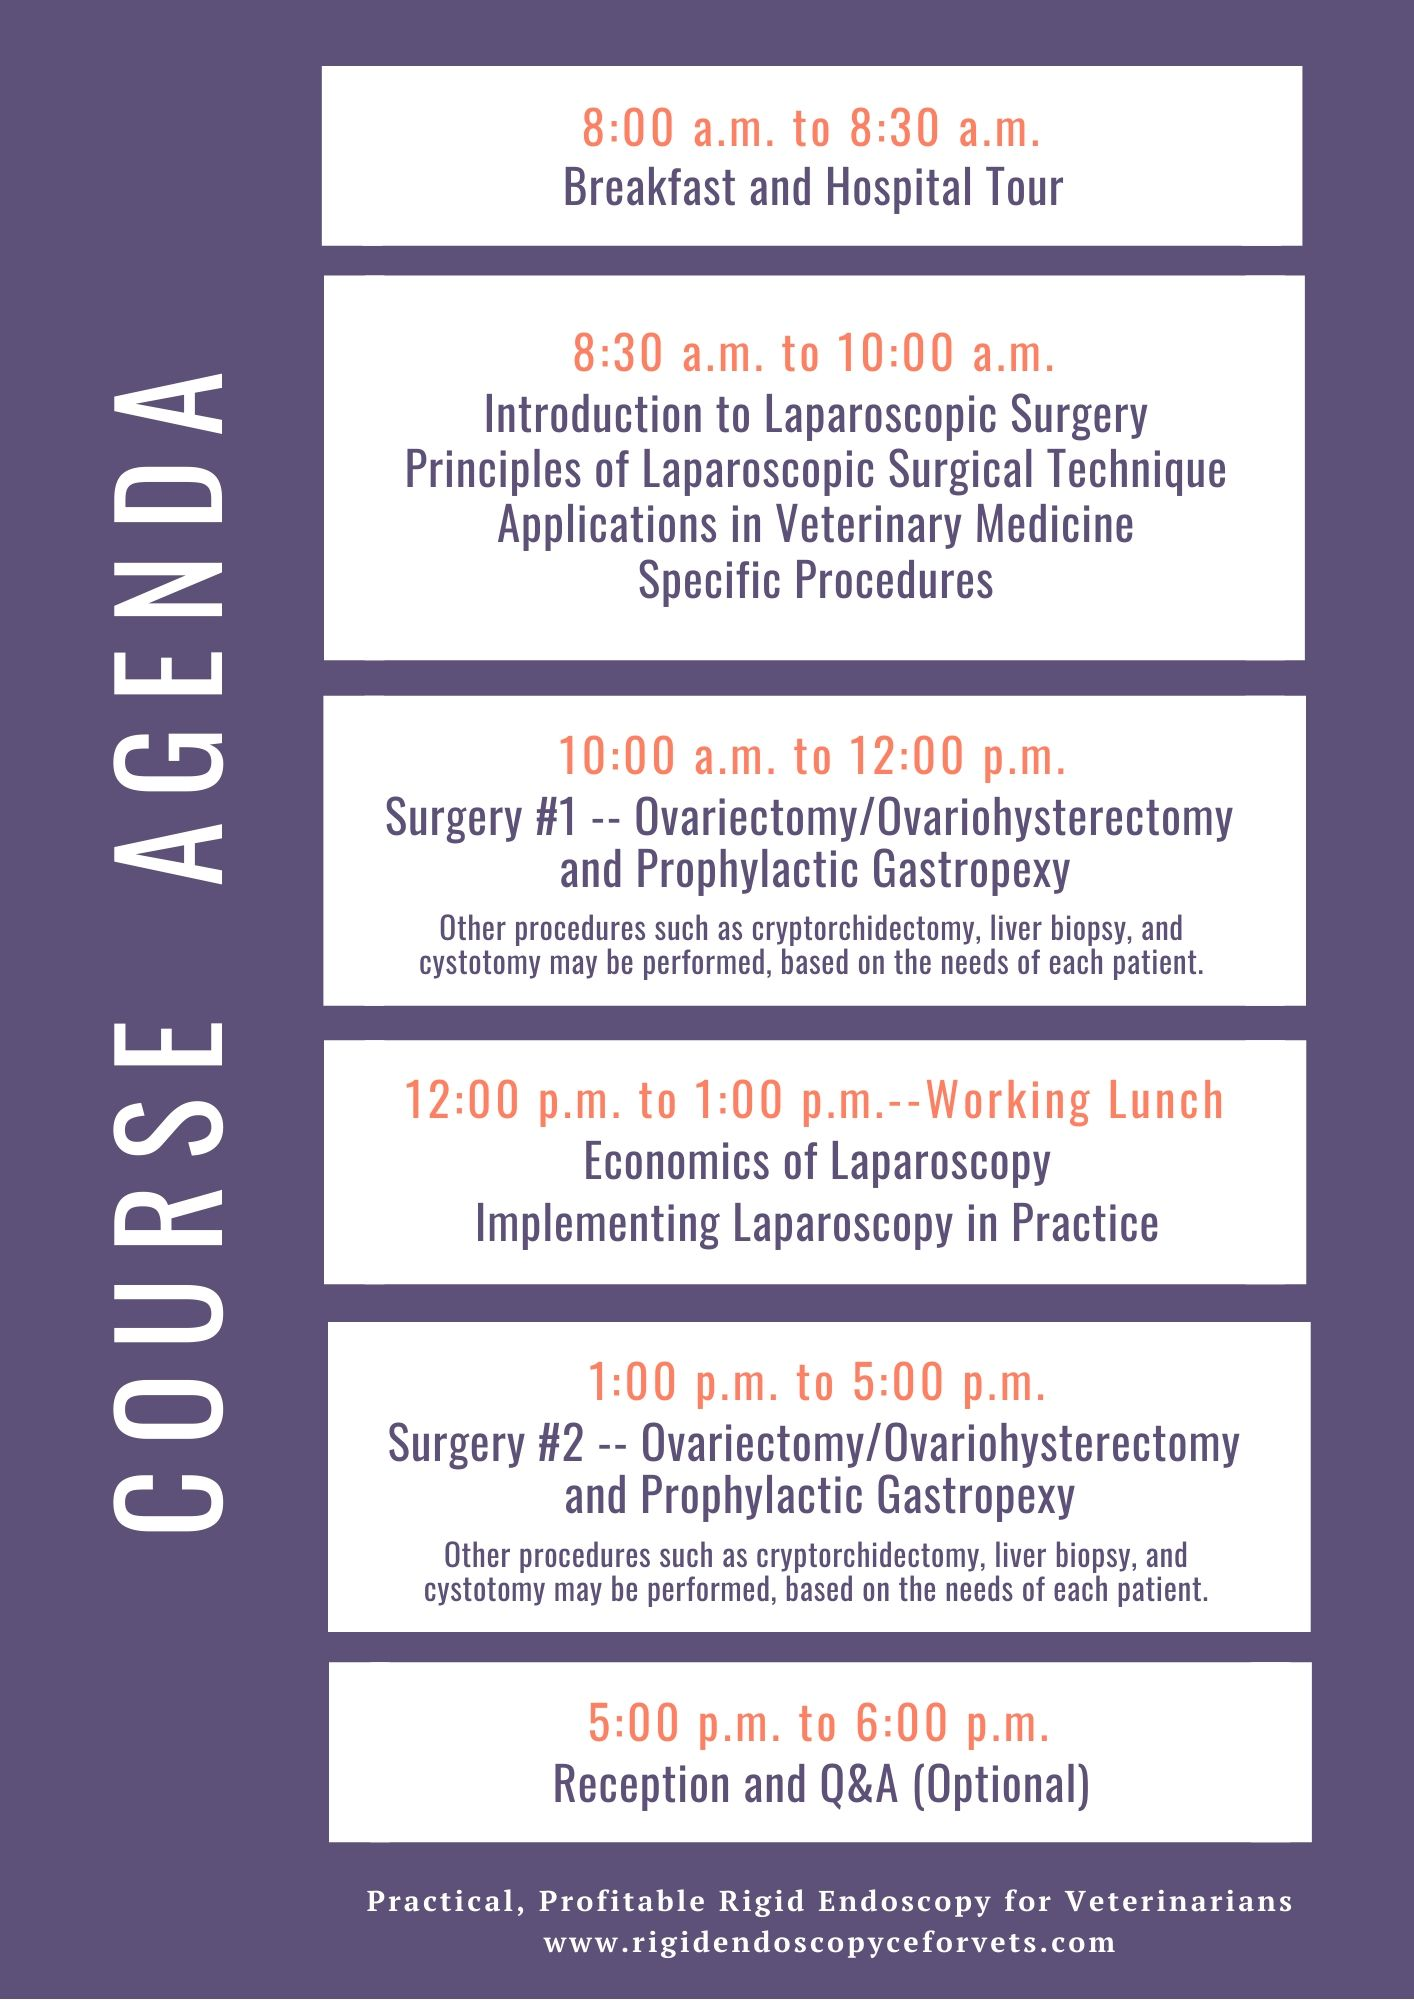 agenda for rigid endoscopy veterinary continuing education course